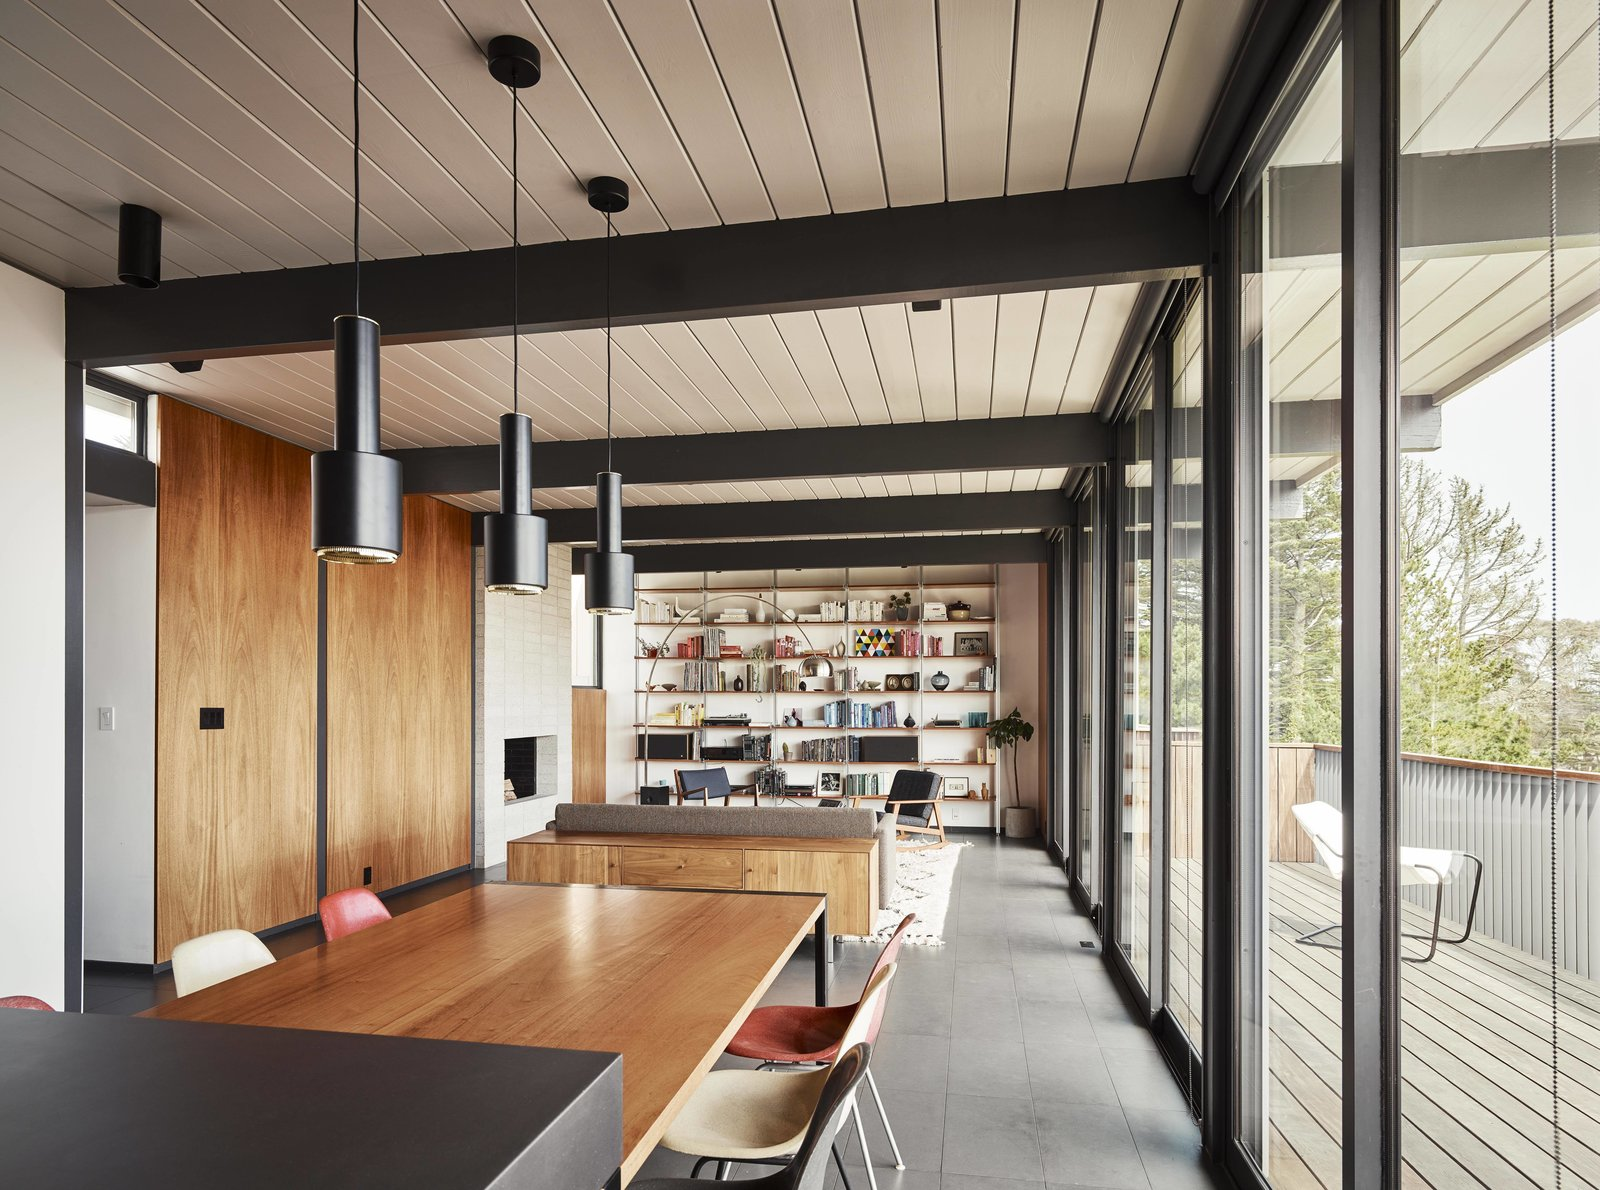 Living, Pendant, Shelves, Sofa, Chair, Rug, Wood Burning, Standard Layout, Floor, and Table  Best Living Table Wood Burning Photos from See the Careful Transformation of a Midcentury Eichler in San Francisco